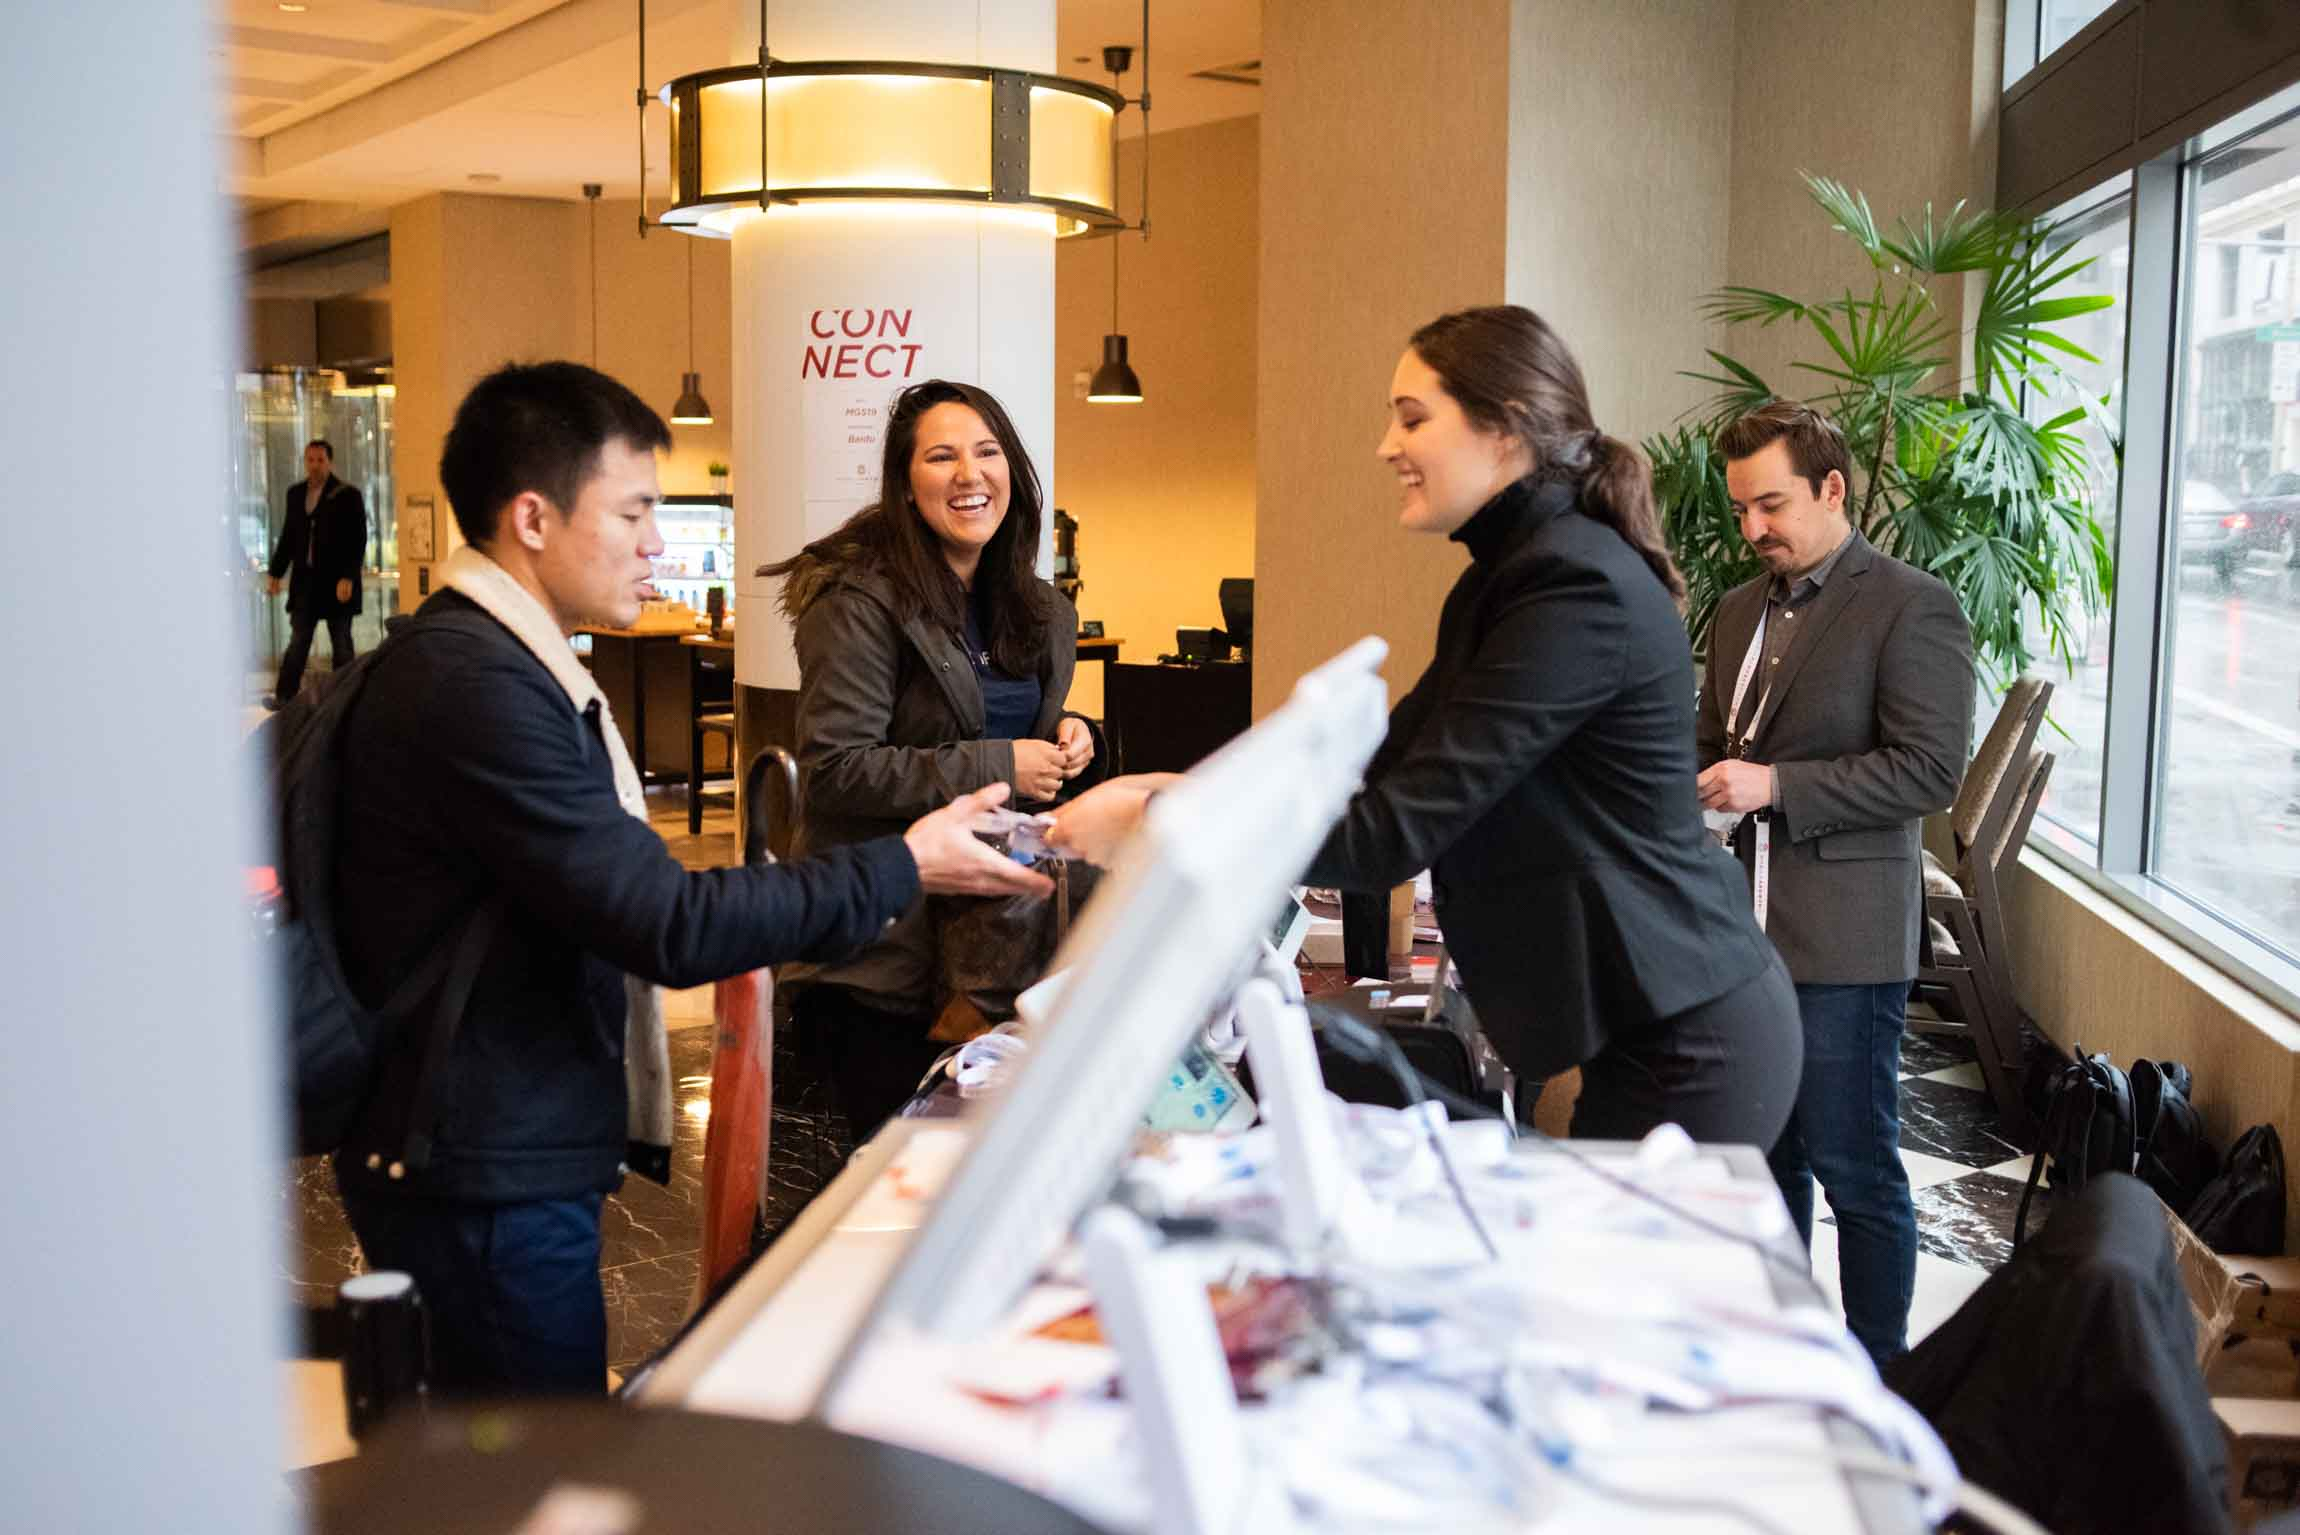 017_mgs2019_sanfrancisco_conference_photography_event.jpg